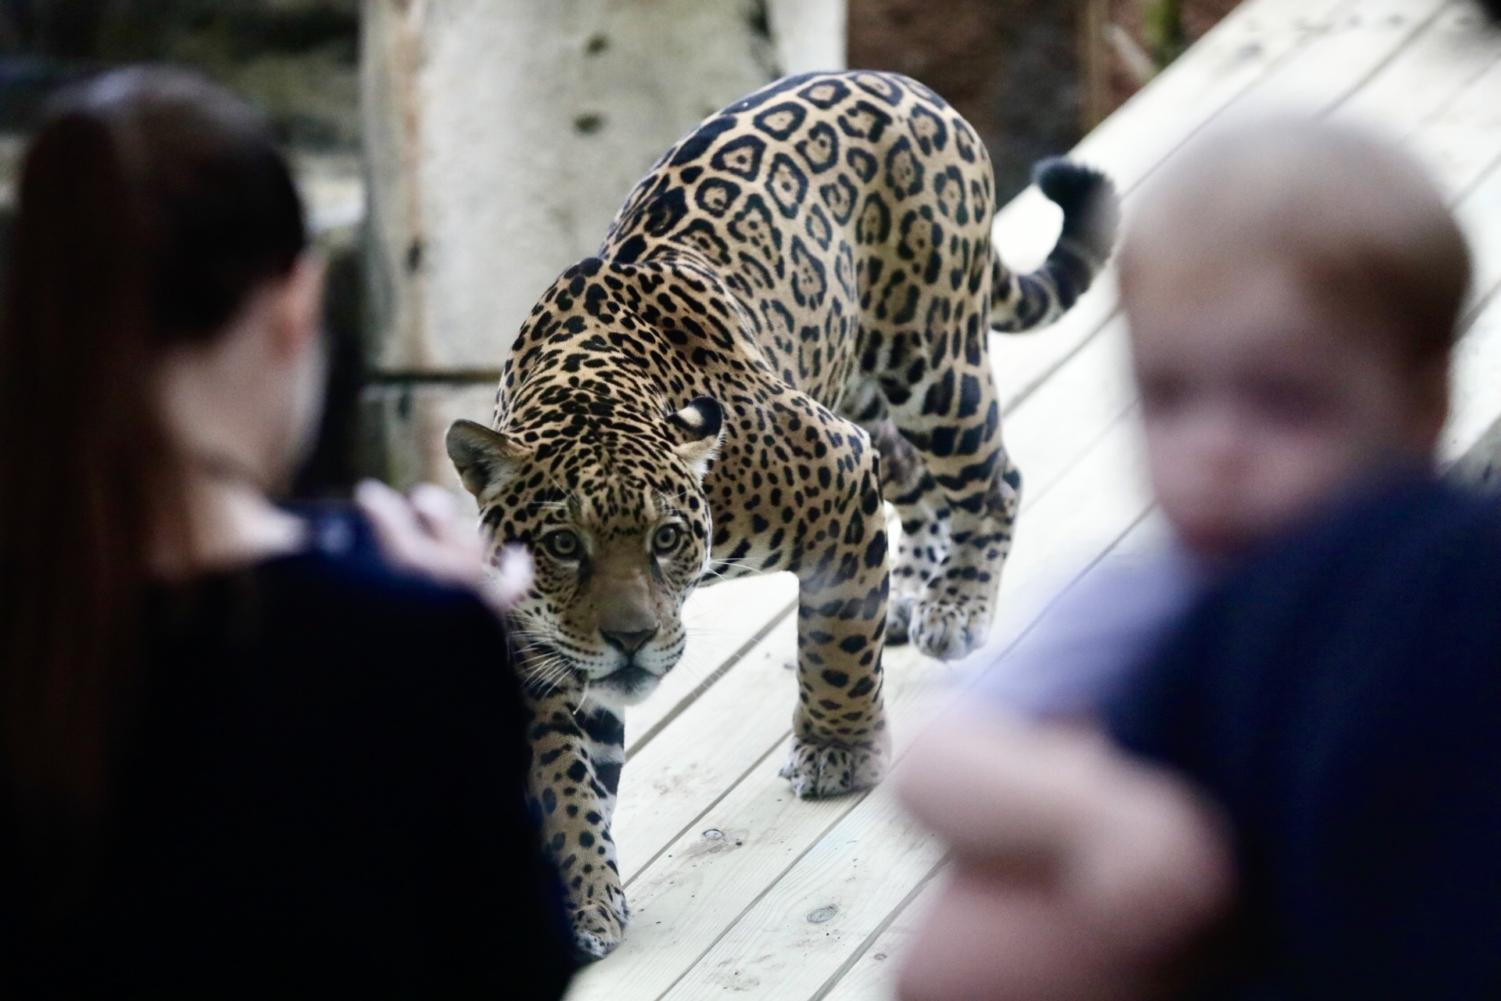 Valerie the Jaguar roaming his enclosure with Audubon Zoo attendants watching. Photo credit: Andres Fuentes